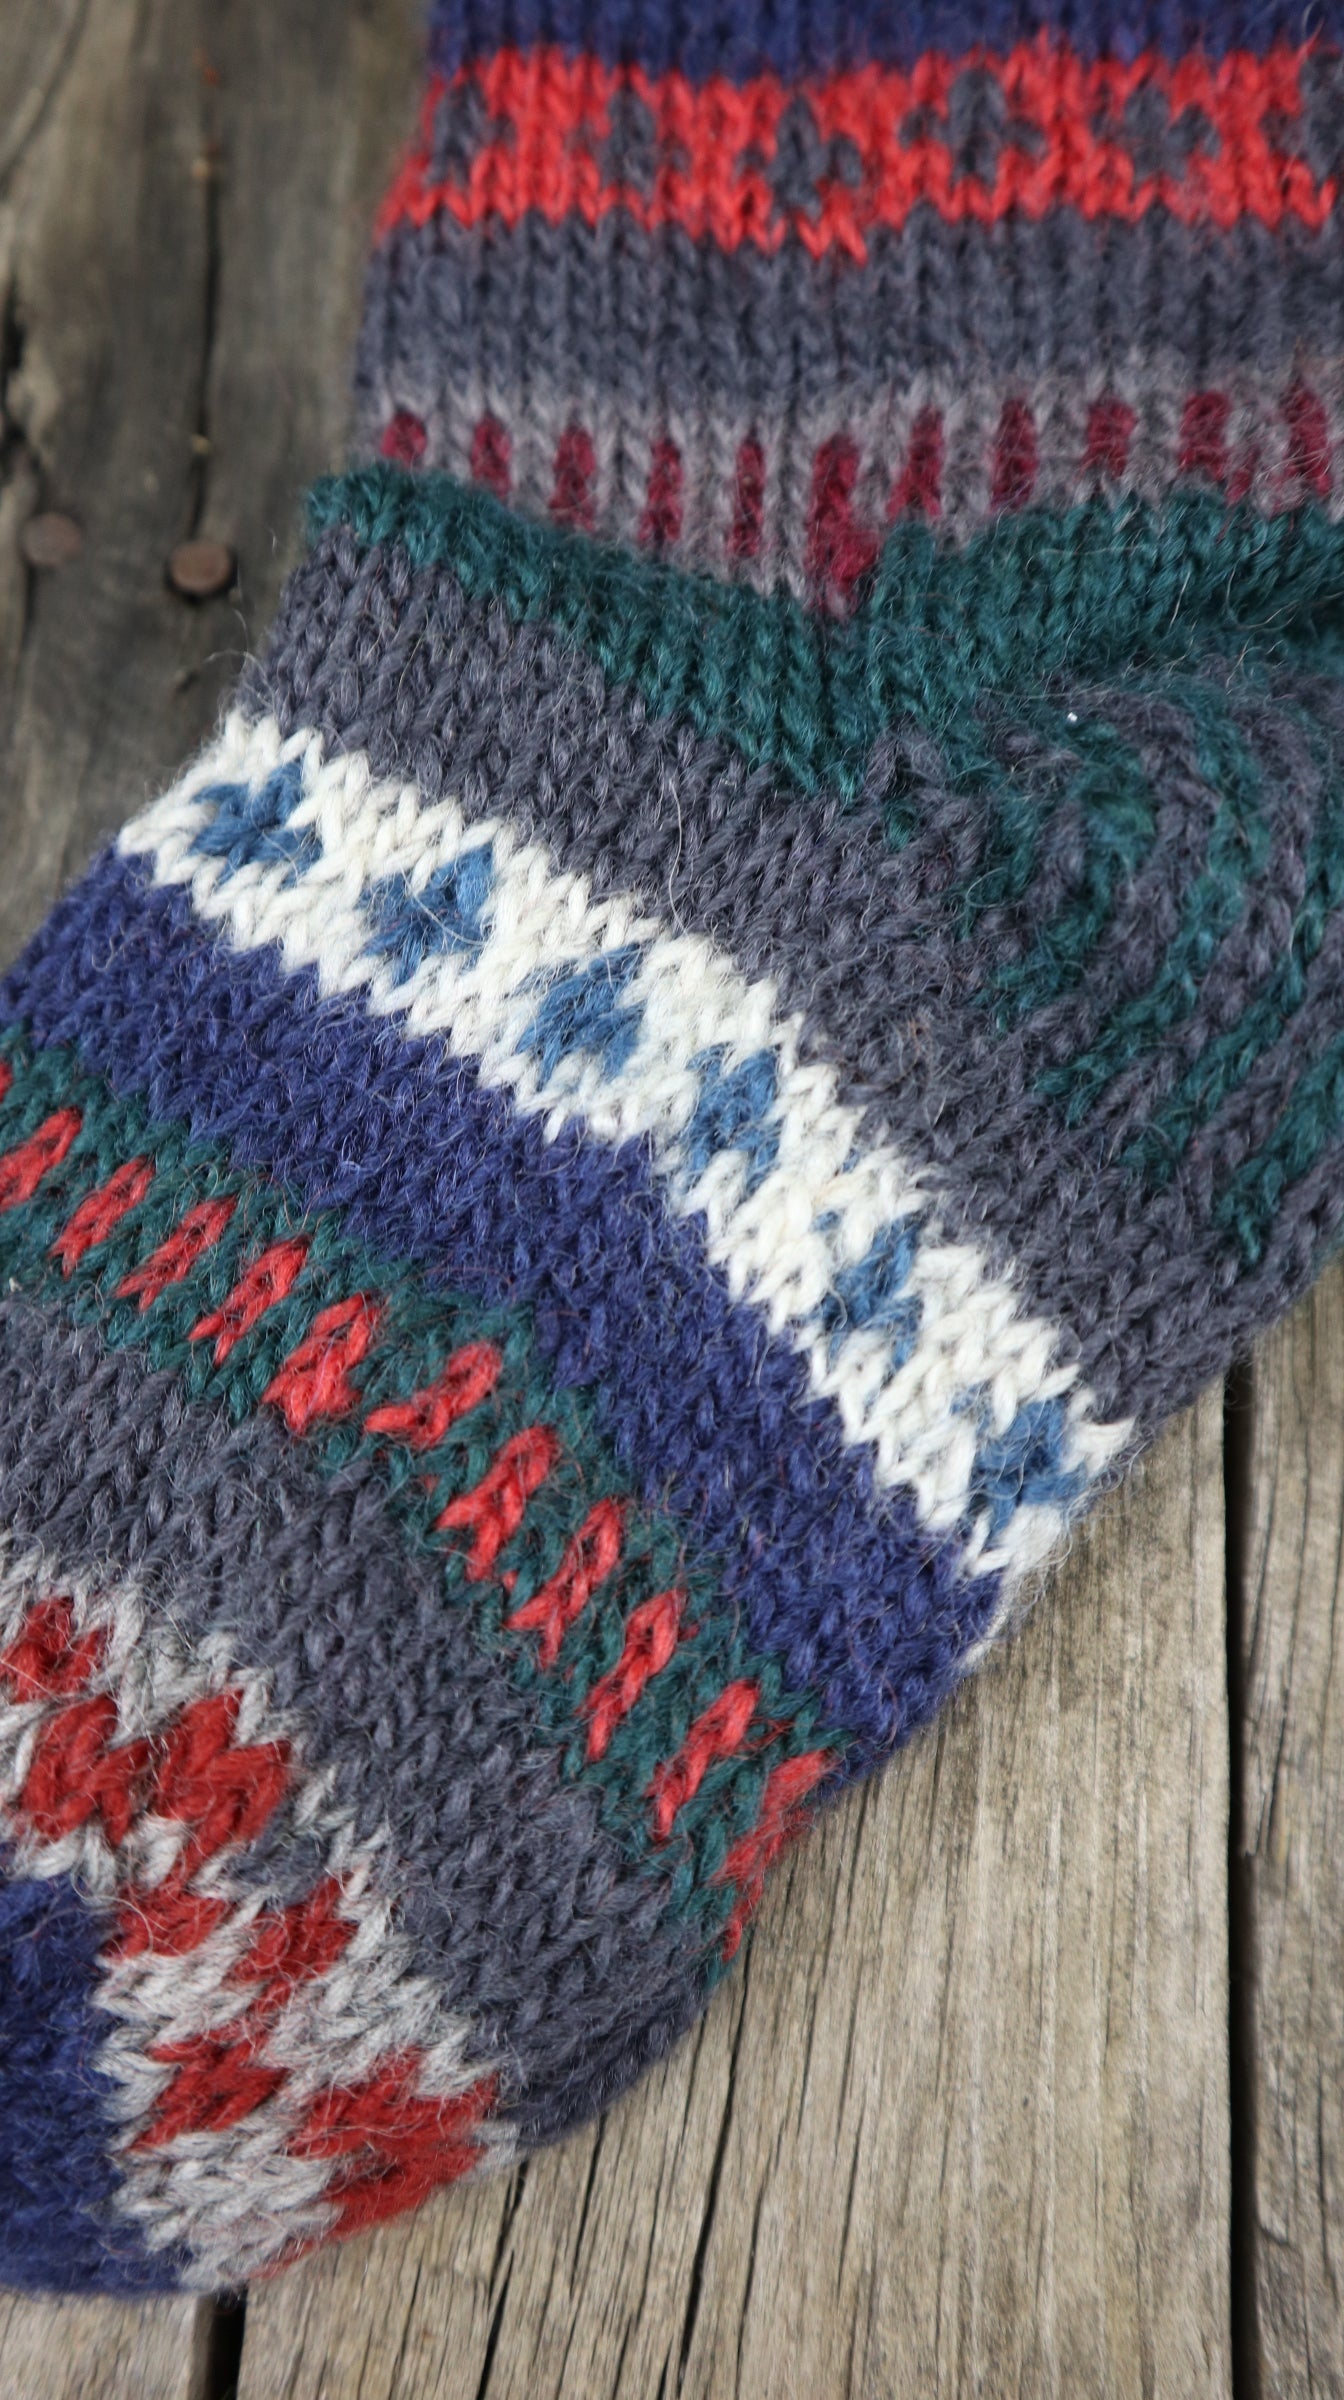 Fair Trade Ethical Children's Patterned Woollen Socks in Green, Brown and Red